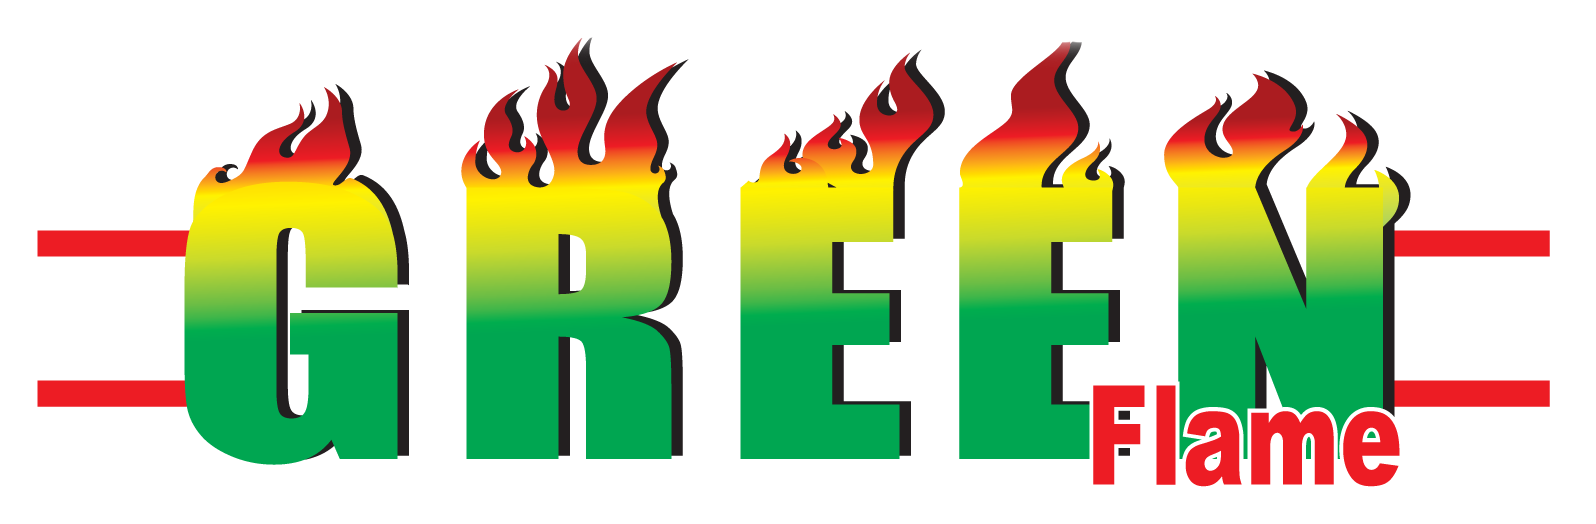 logo green flame